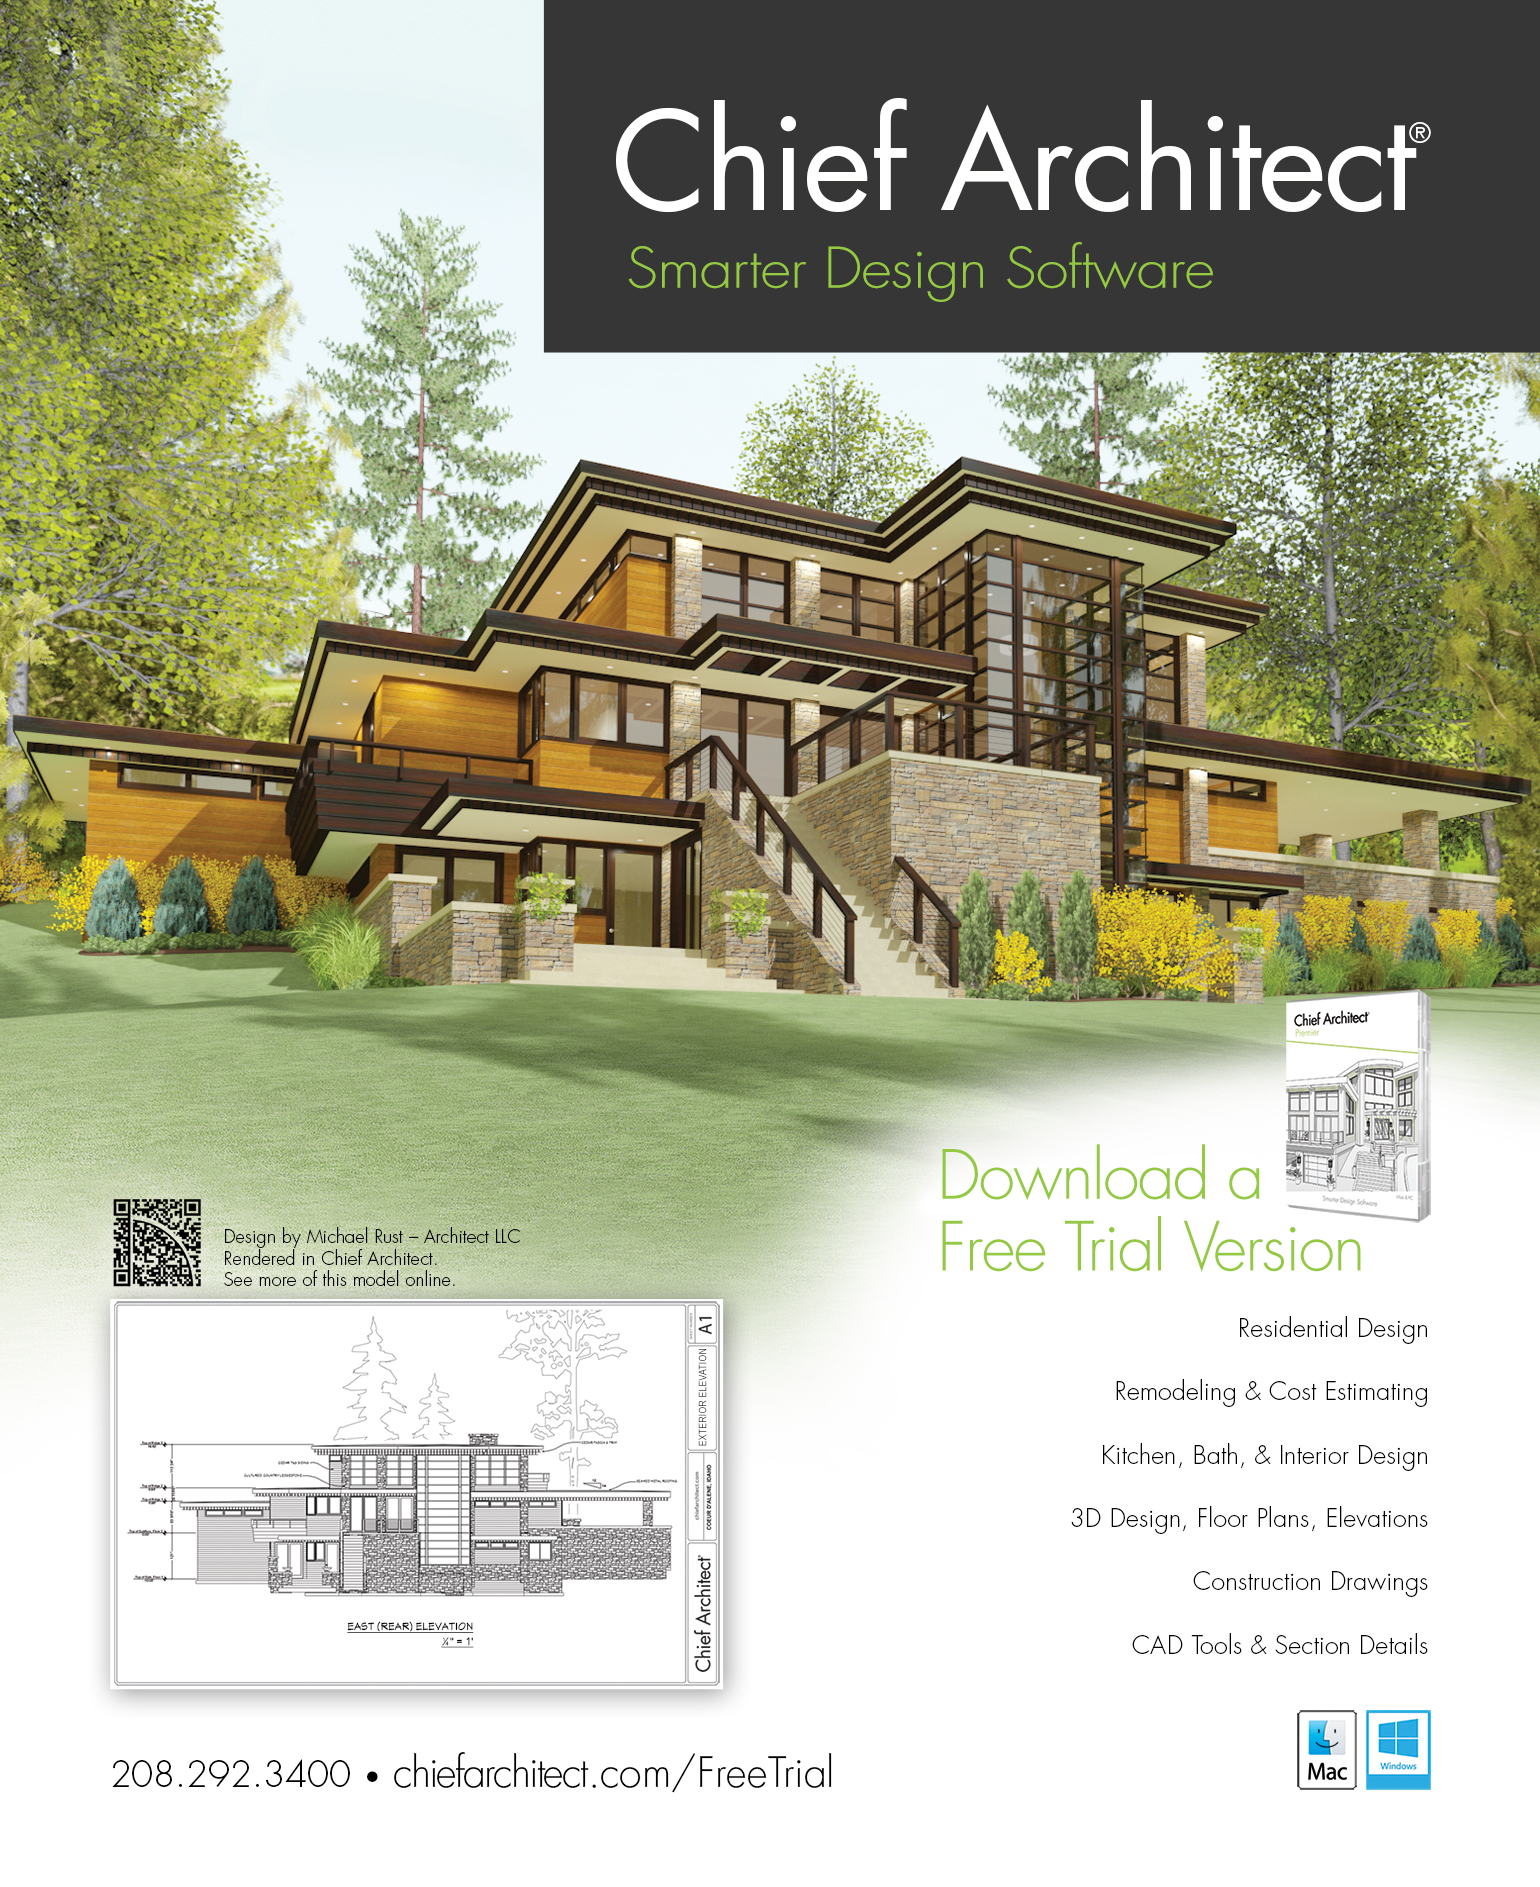 Chief Architect Home Design Software Ad